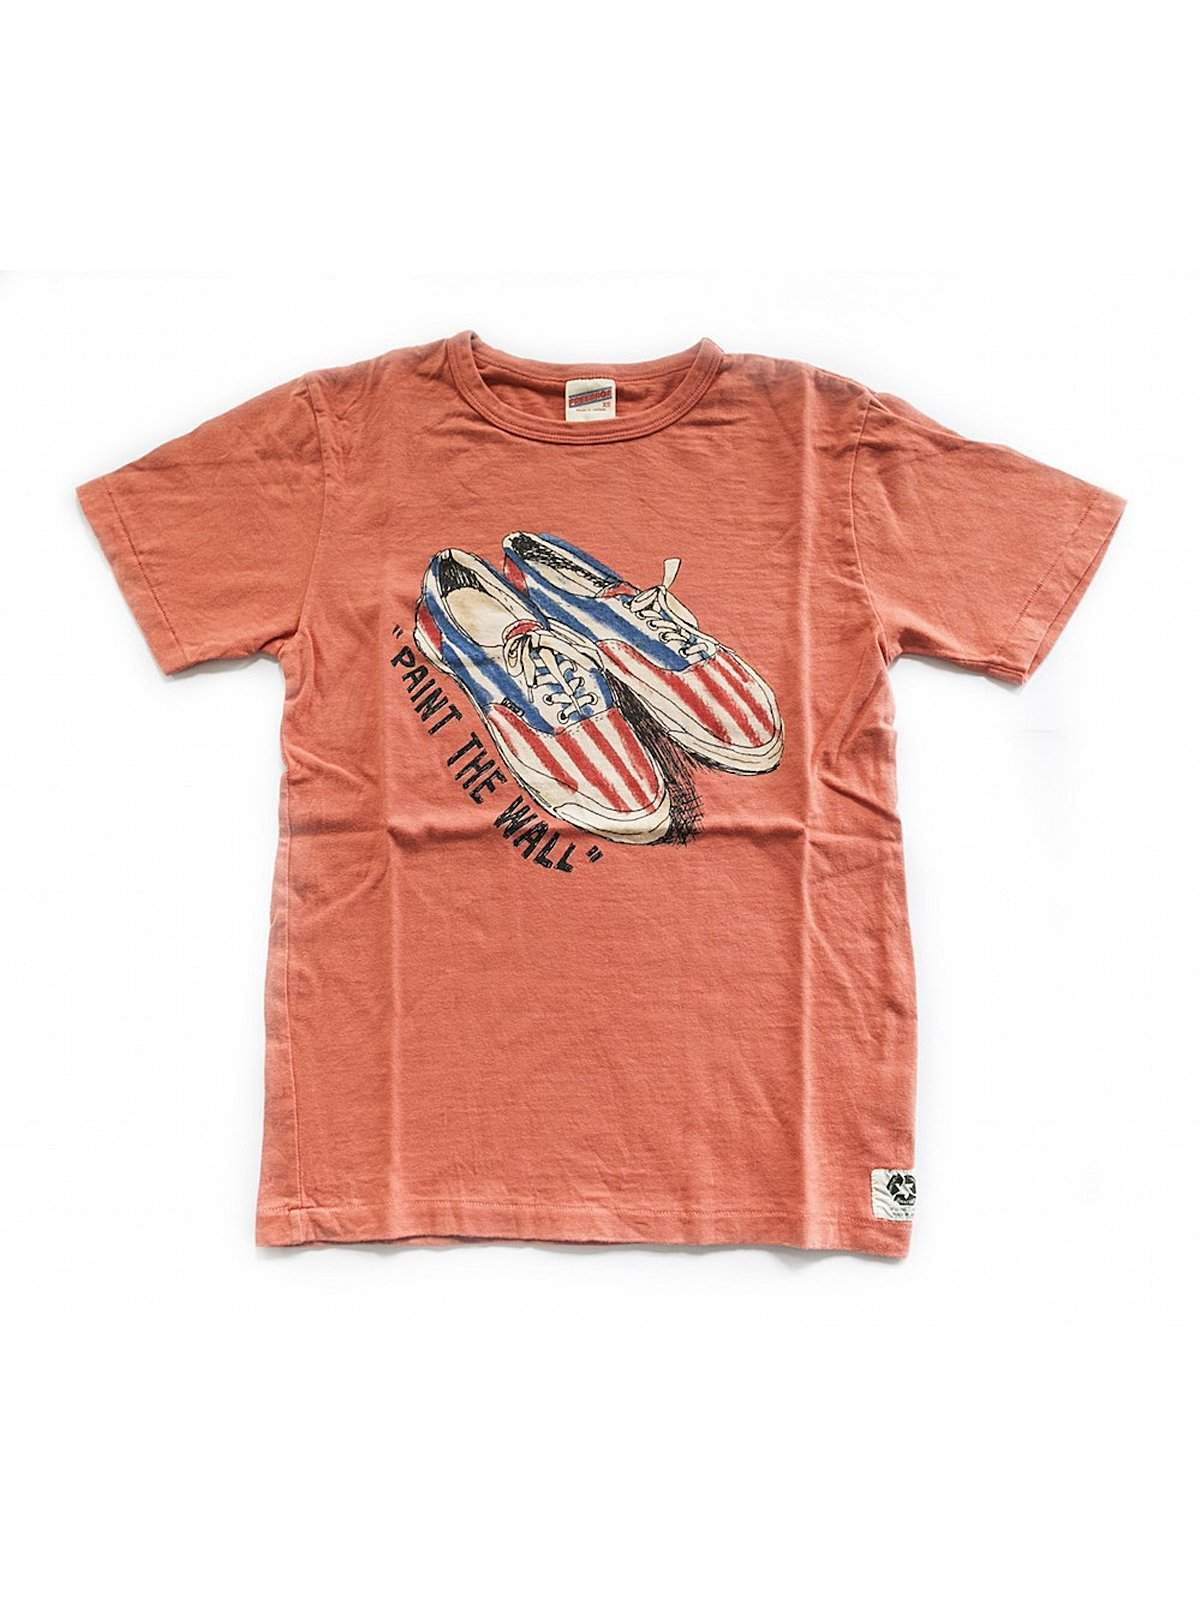 Free Rage Paint The Wall Tee Coral - MORE by Morello Indonesia